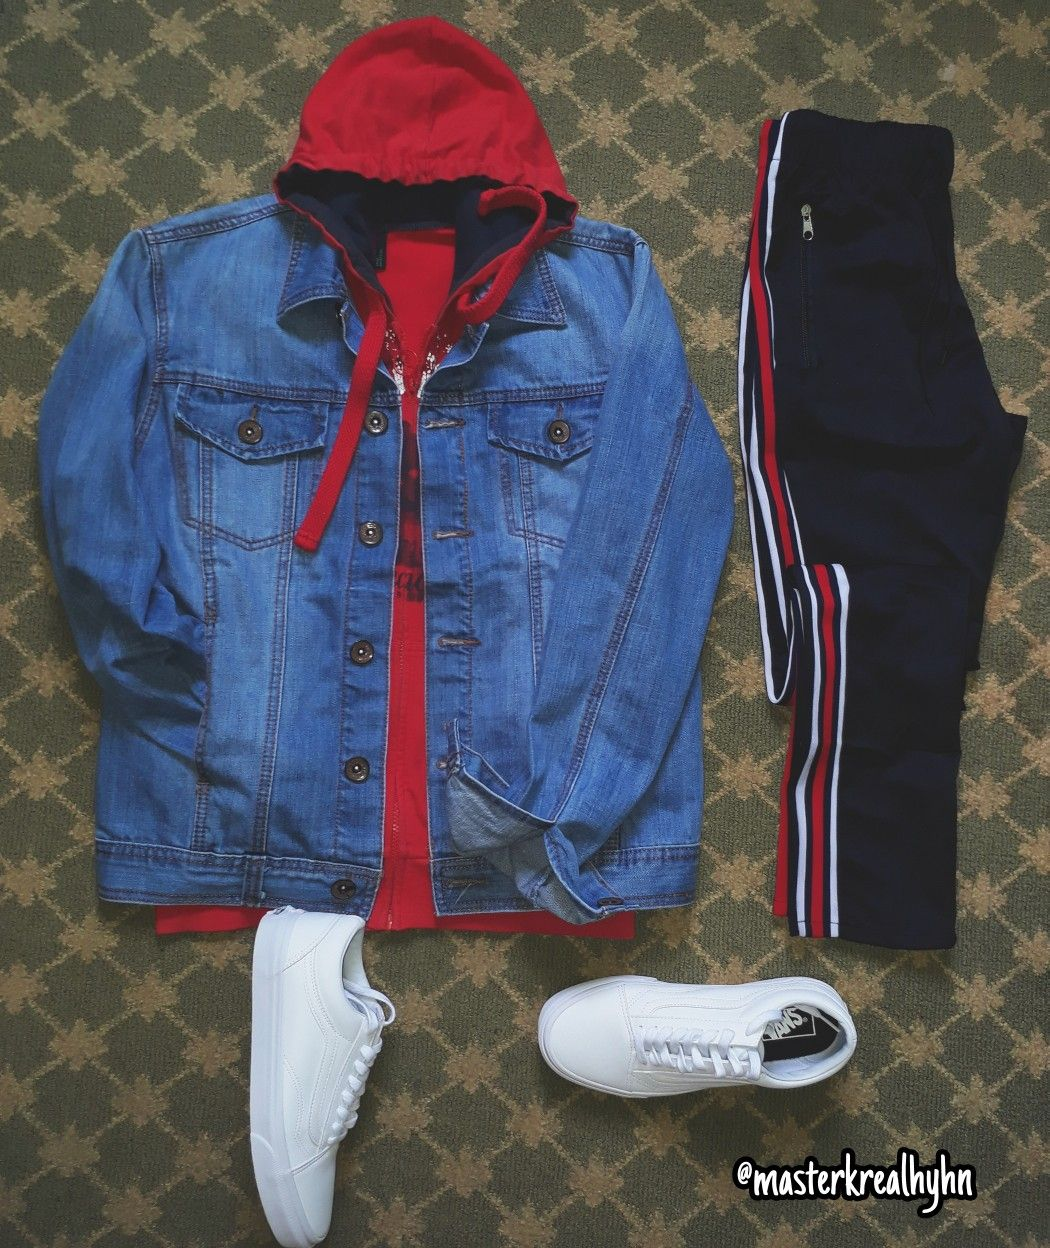 Washed Out Denim Jacket Red Hoodie Underneath Sportswear Striped Pants And White Old Skoll Vans Ig Hoodie Outfit Men Red Hoodie Outfit Red Hoodie Outfit Men [ 1248 x 1050 Pixel ]